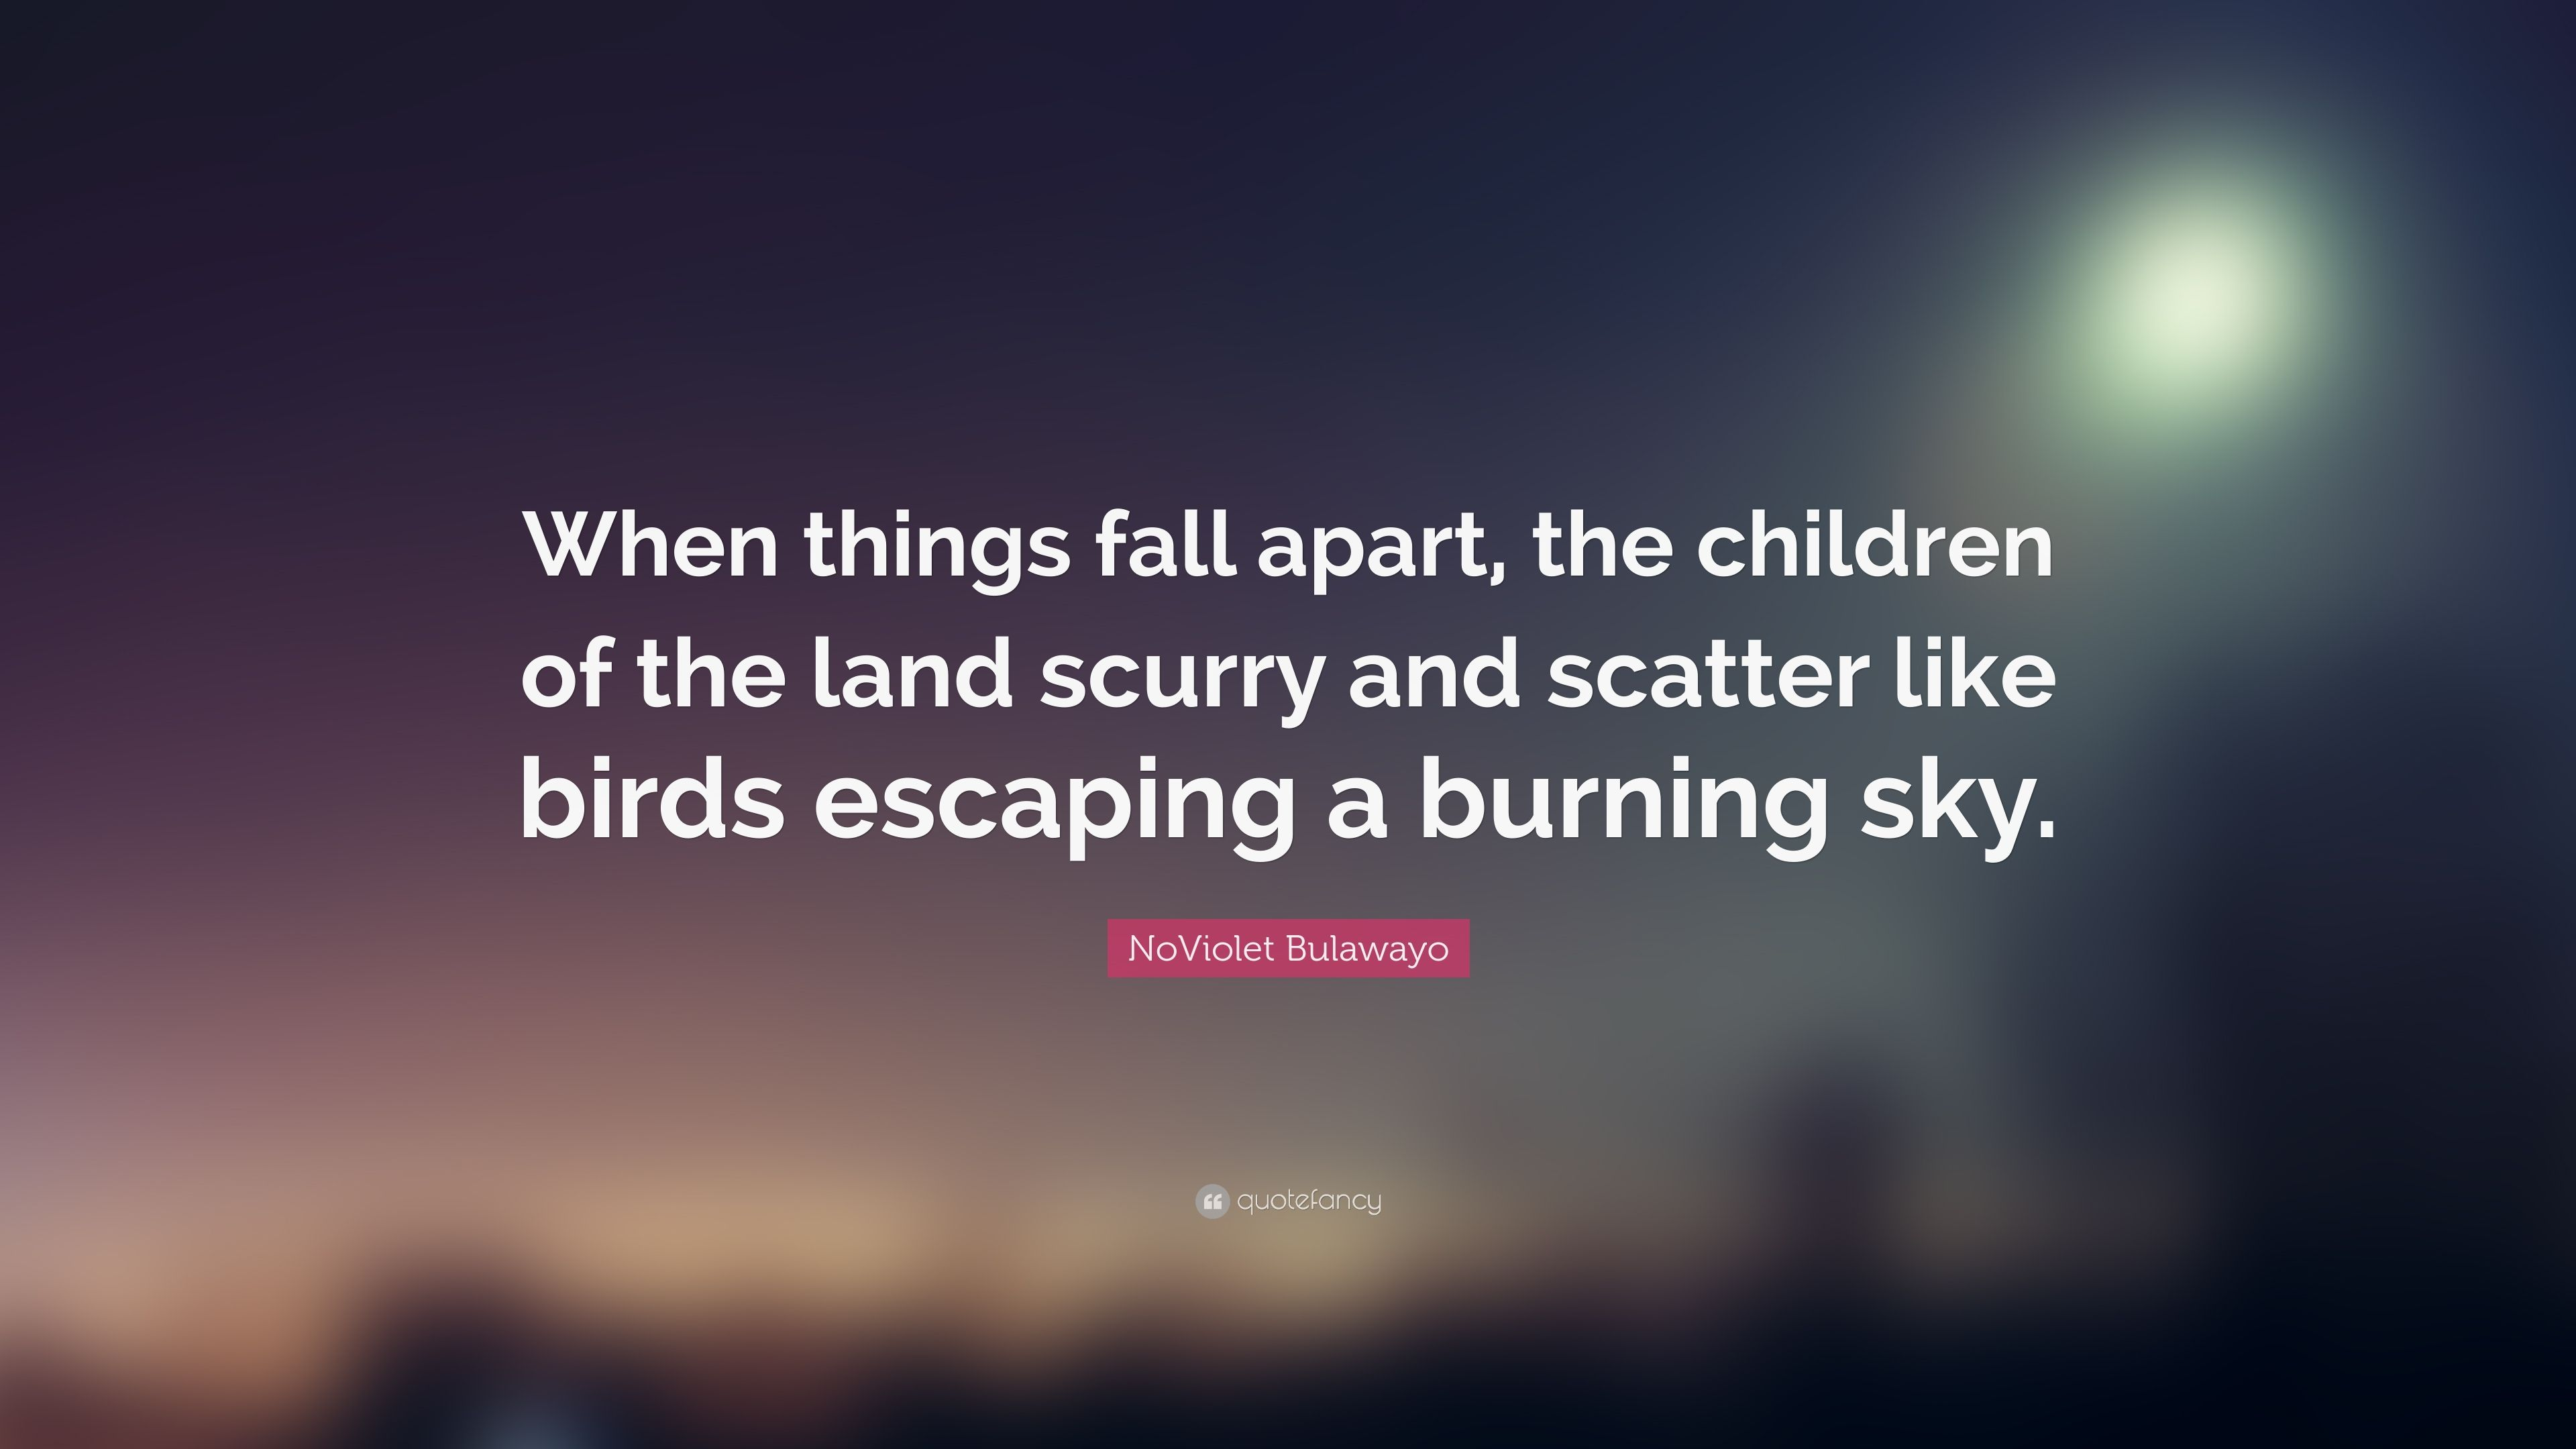 When things fall apart quotes Things Fall Apart Quotes